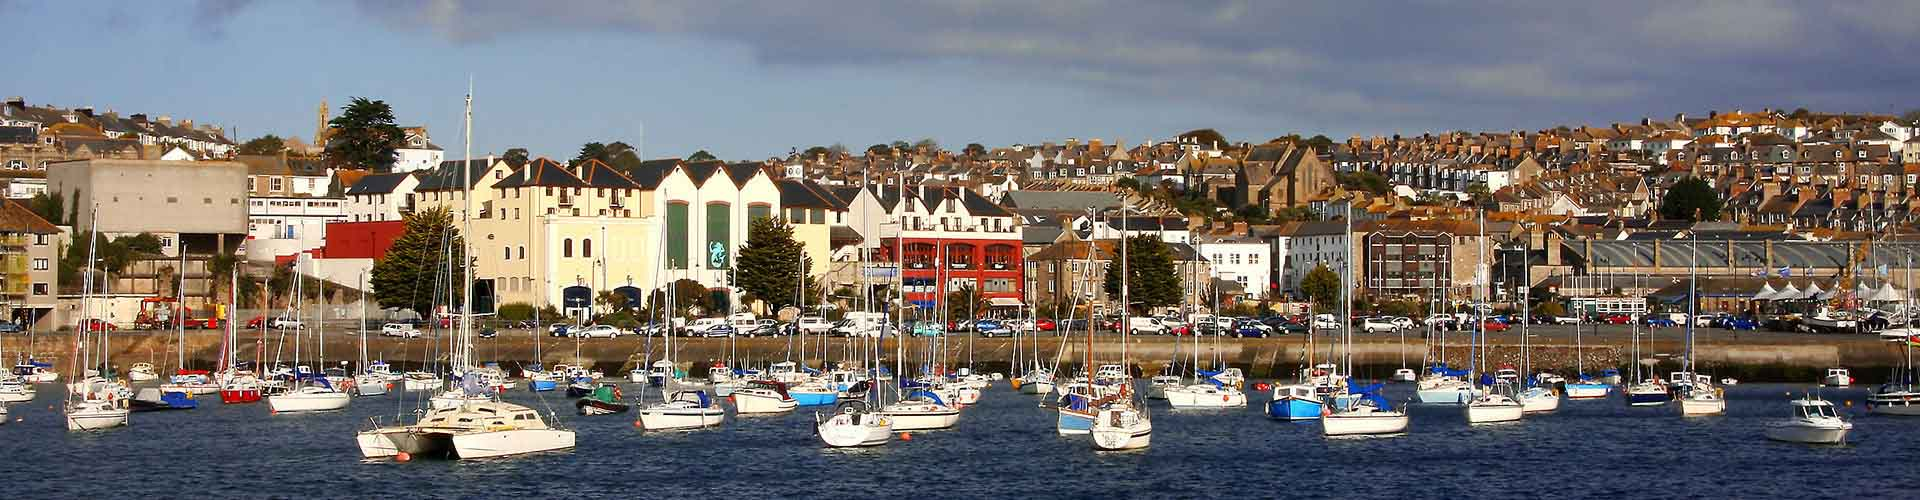 Penzance – Hostels in Penzance. Maps for Penzance, Photos and Reviews for each hostel in Penzance.